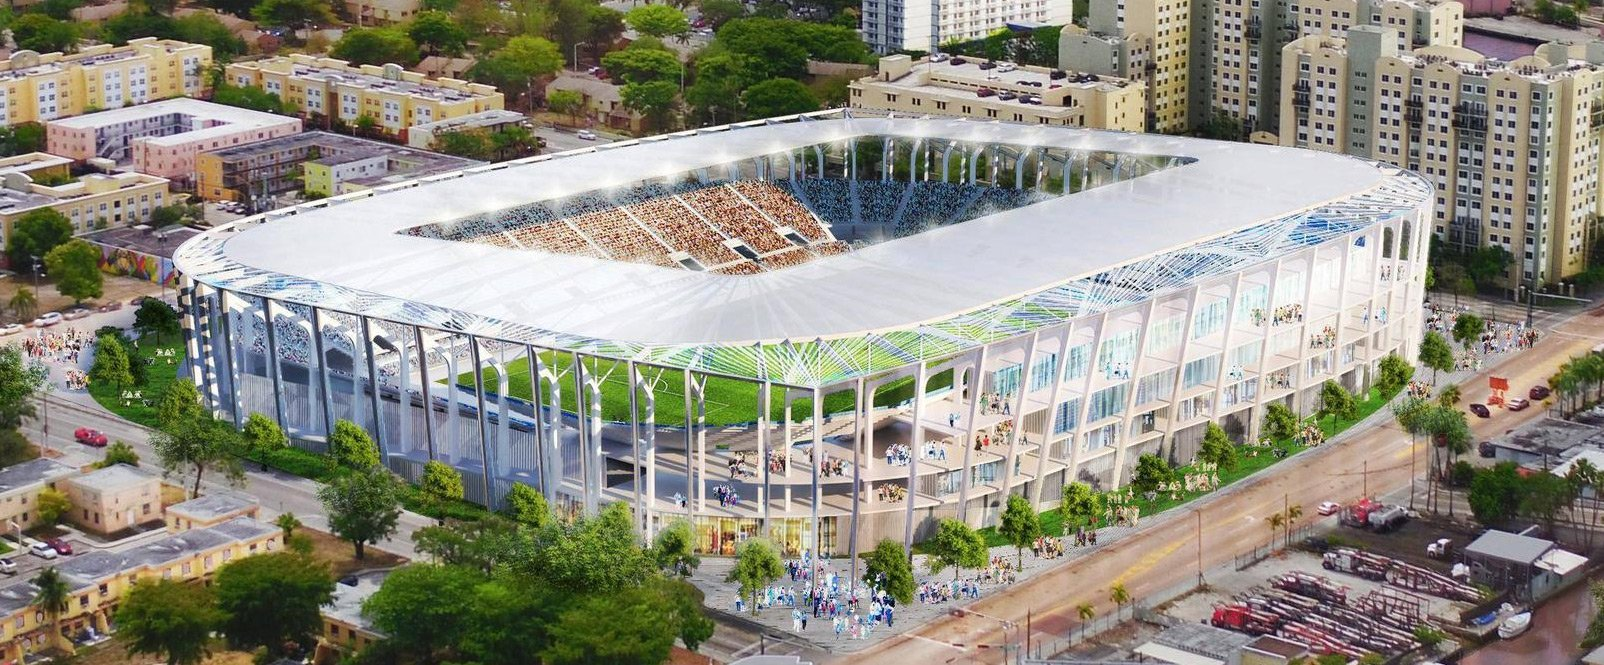 Miami Overtown Stadium